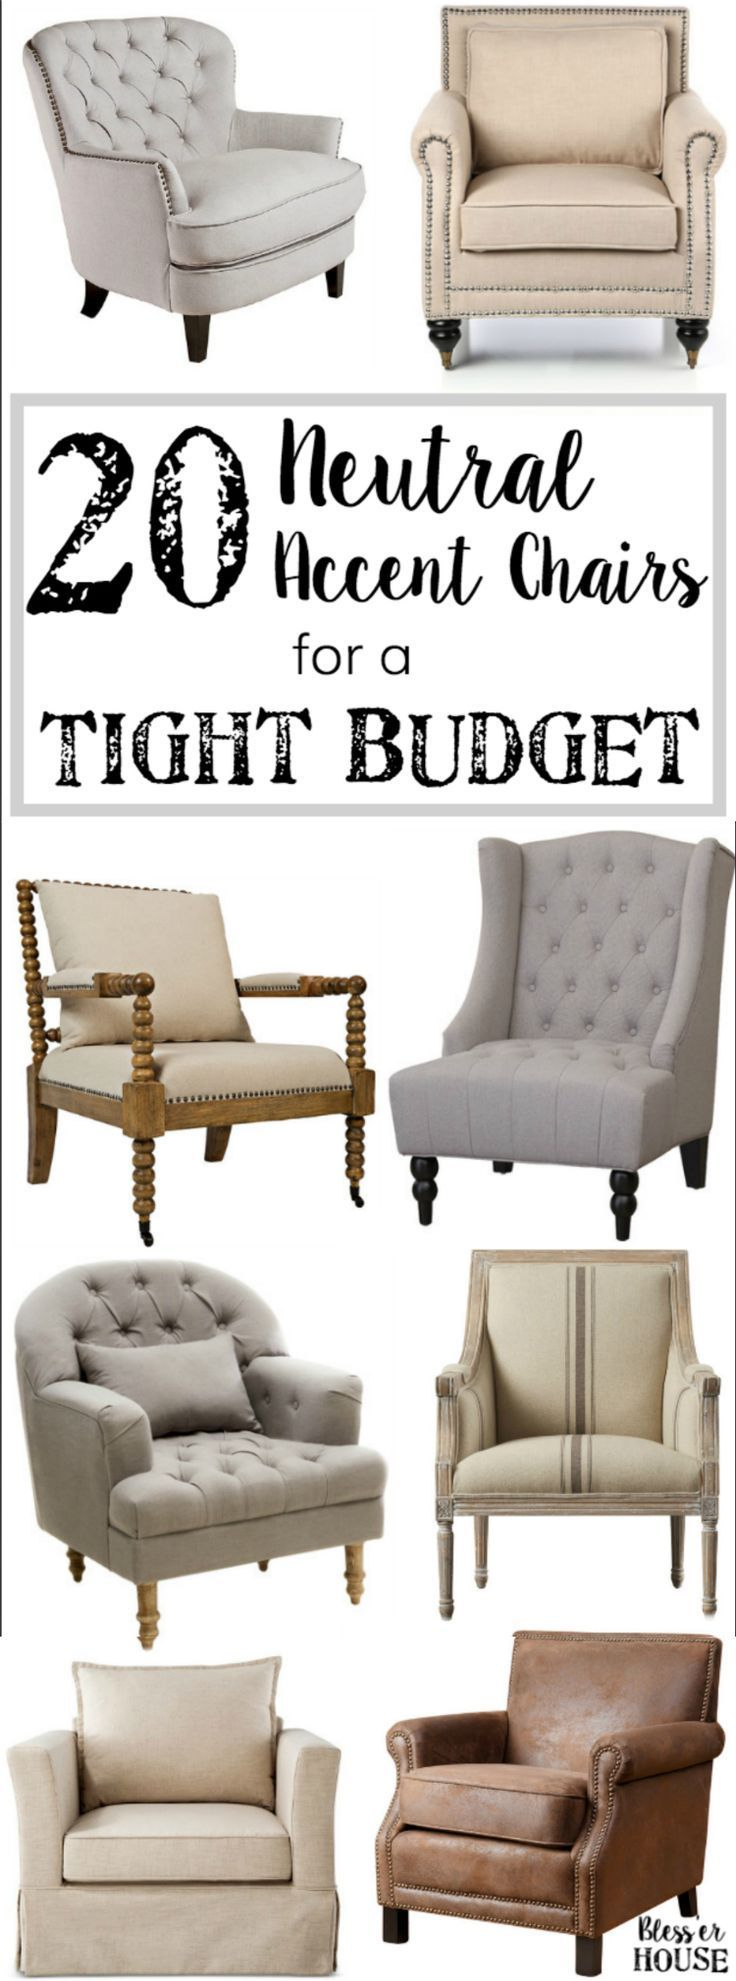 20 Neutral Accent Chairs For A Tight Budget Http Blesserhouse Com 20 Of The Most Highly Comfortable Accent Chairs Comfy Accent Chairs Living Room Chairs